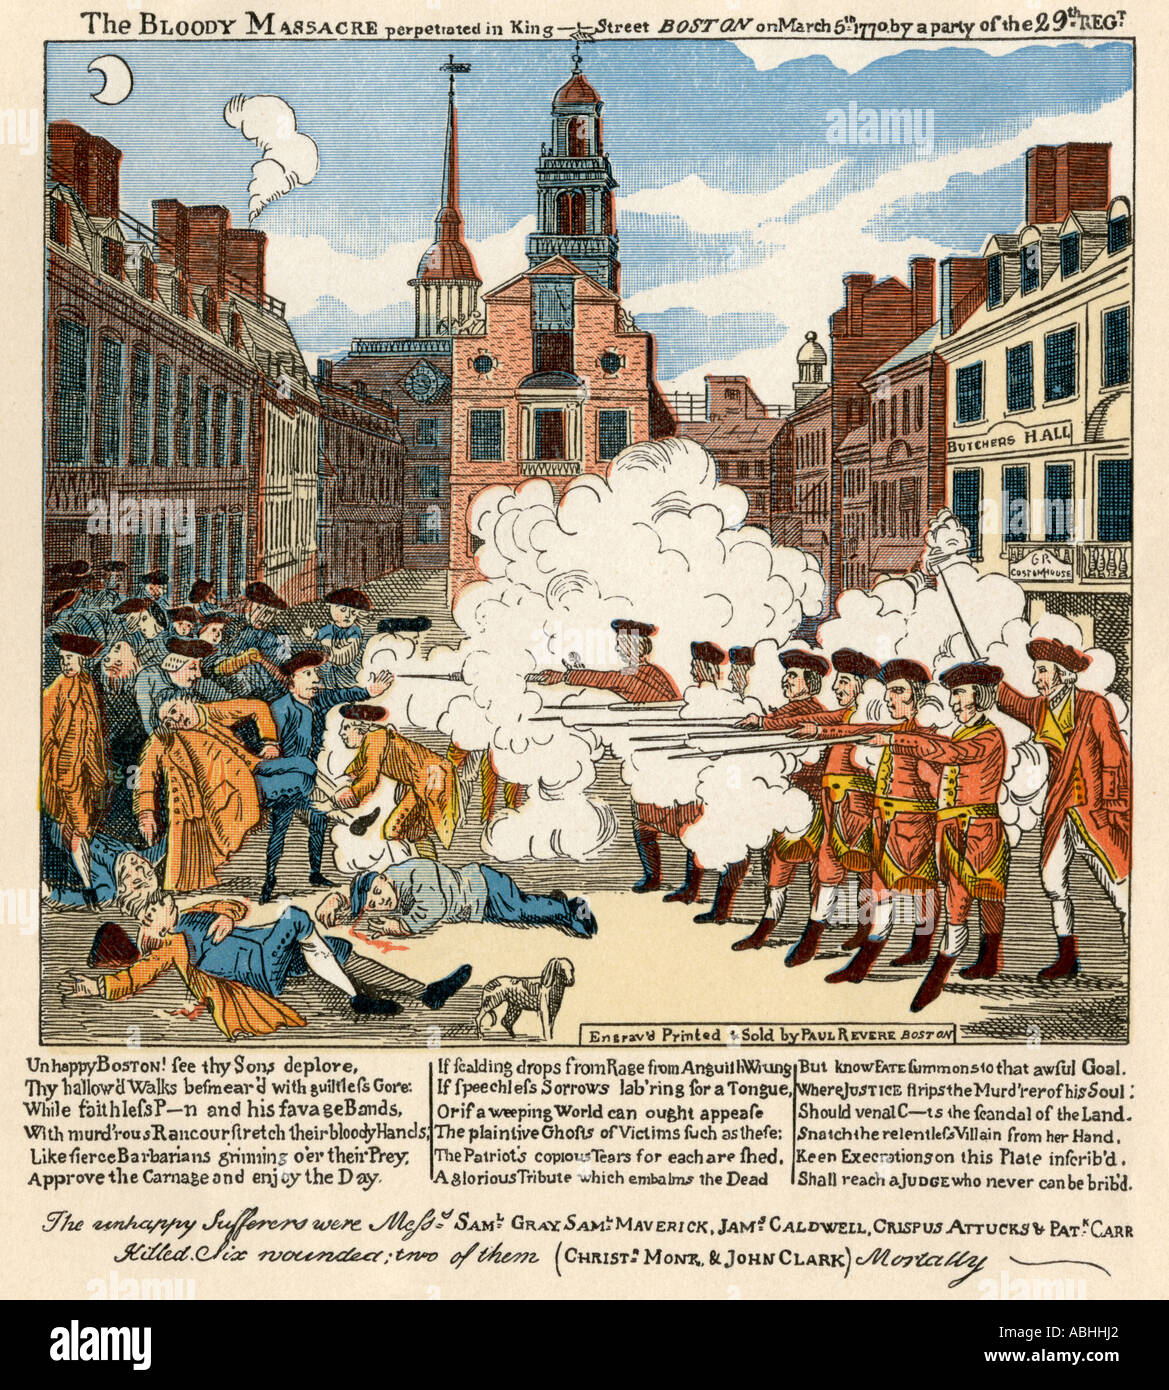 an account of events of 1770 horrid massacre in boston A excellency, some very extraordinary events that have taken tive of the horrid massacre in boston, which was promptly appendix to a fair account of the late unhappy disturbance, london, were added as an 1770, which calls attention to the fact that they were omitted from the narrative, and numbers them beginning.